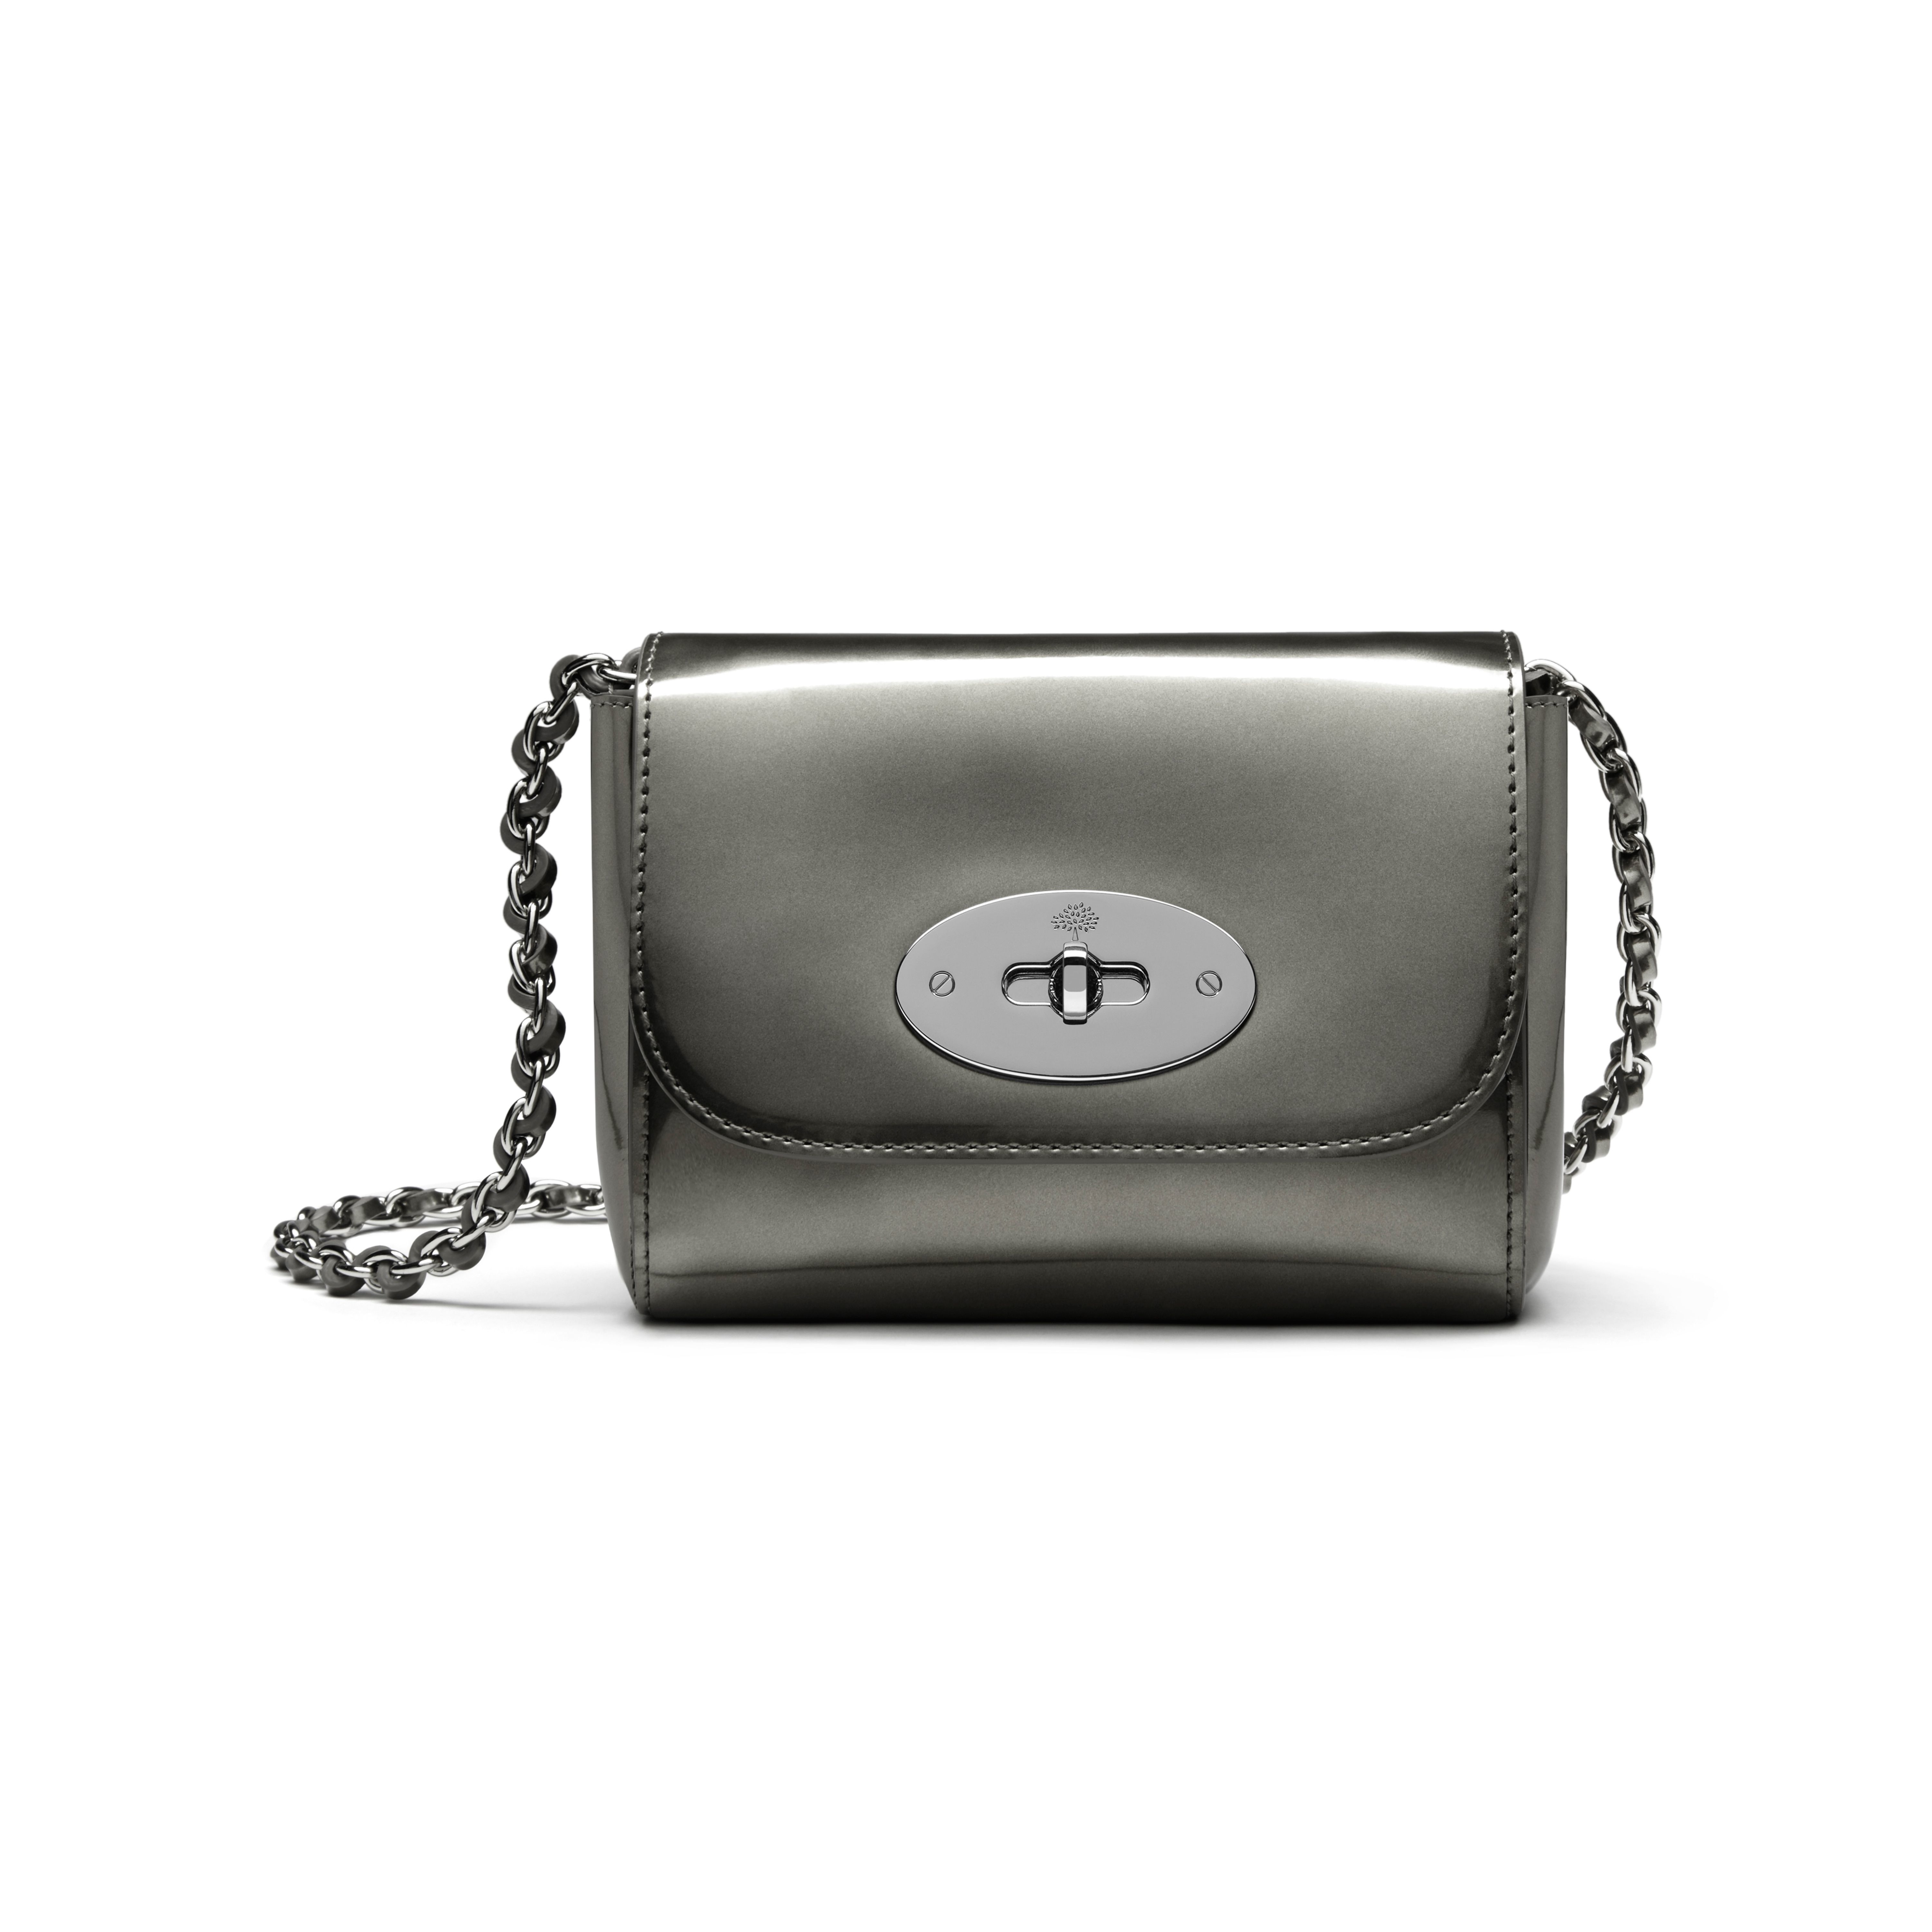 d34ccdac95ee ... spain mulberry lily mini metallic leather shoulder bag in metallic lyst  7fce2 7d635 ...